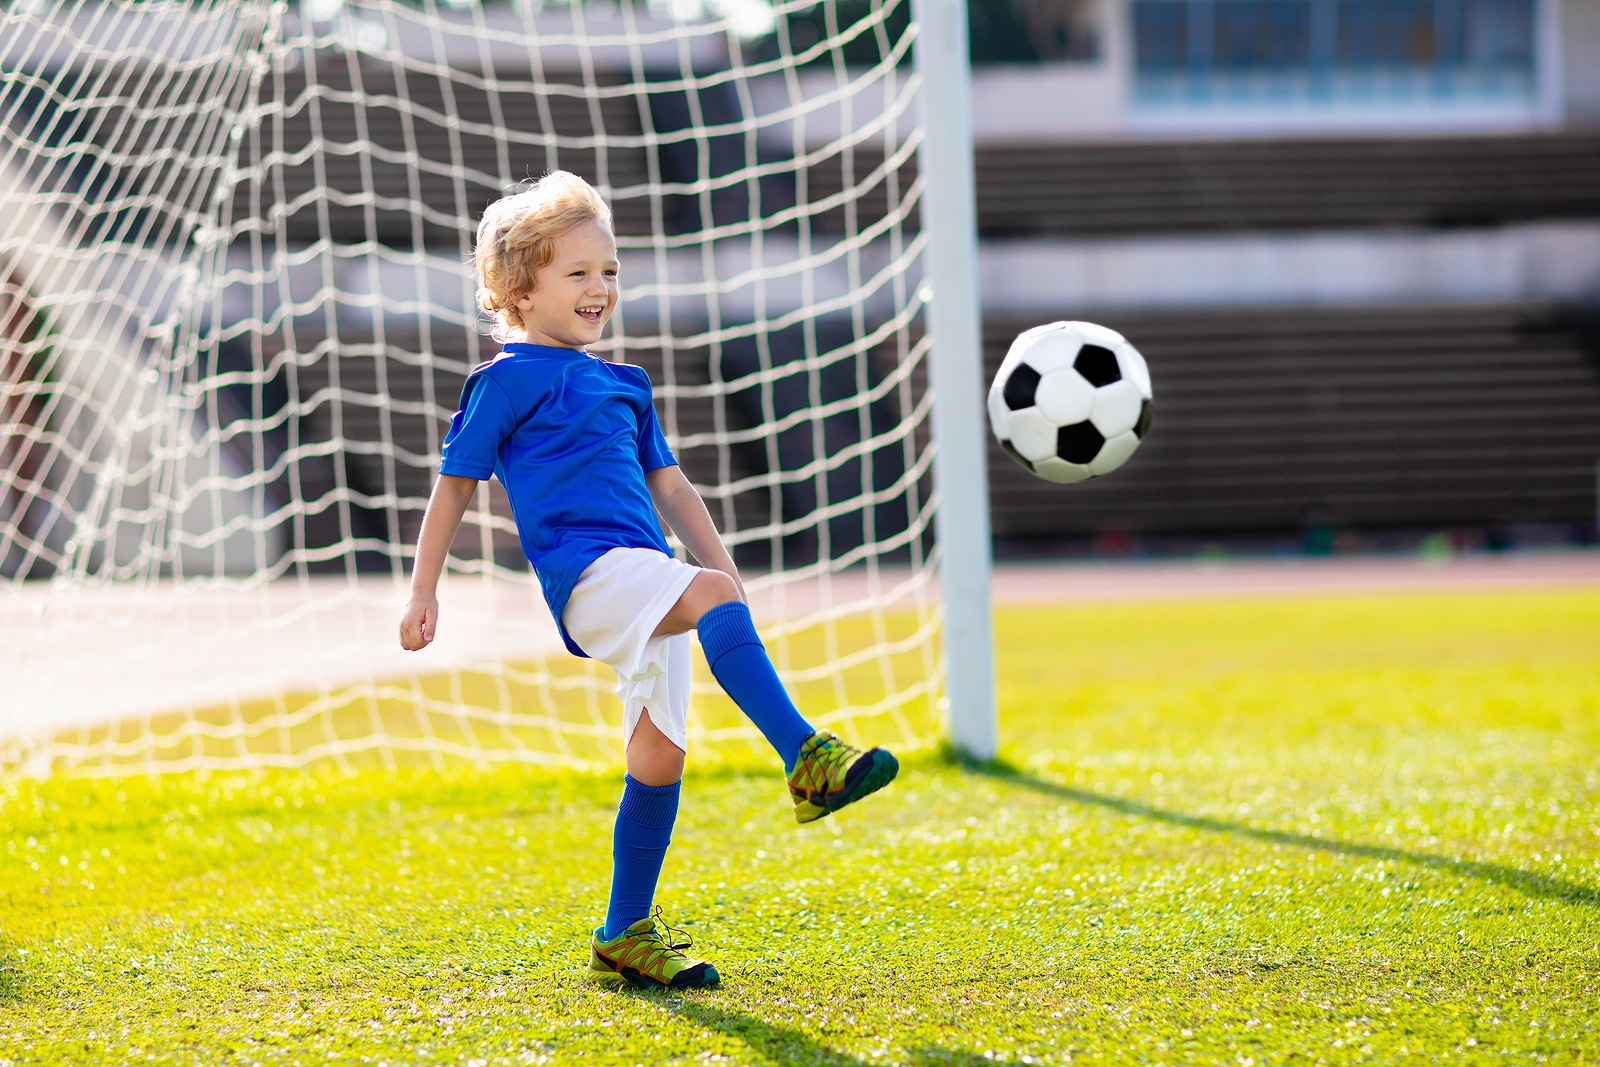 a kid in a football goal defending an oncoming shot at goal